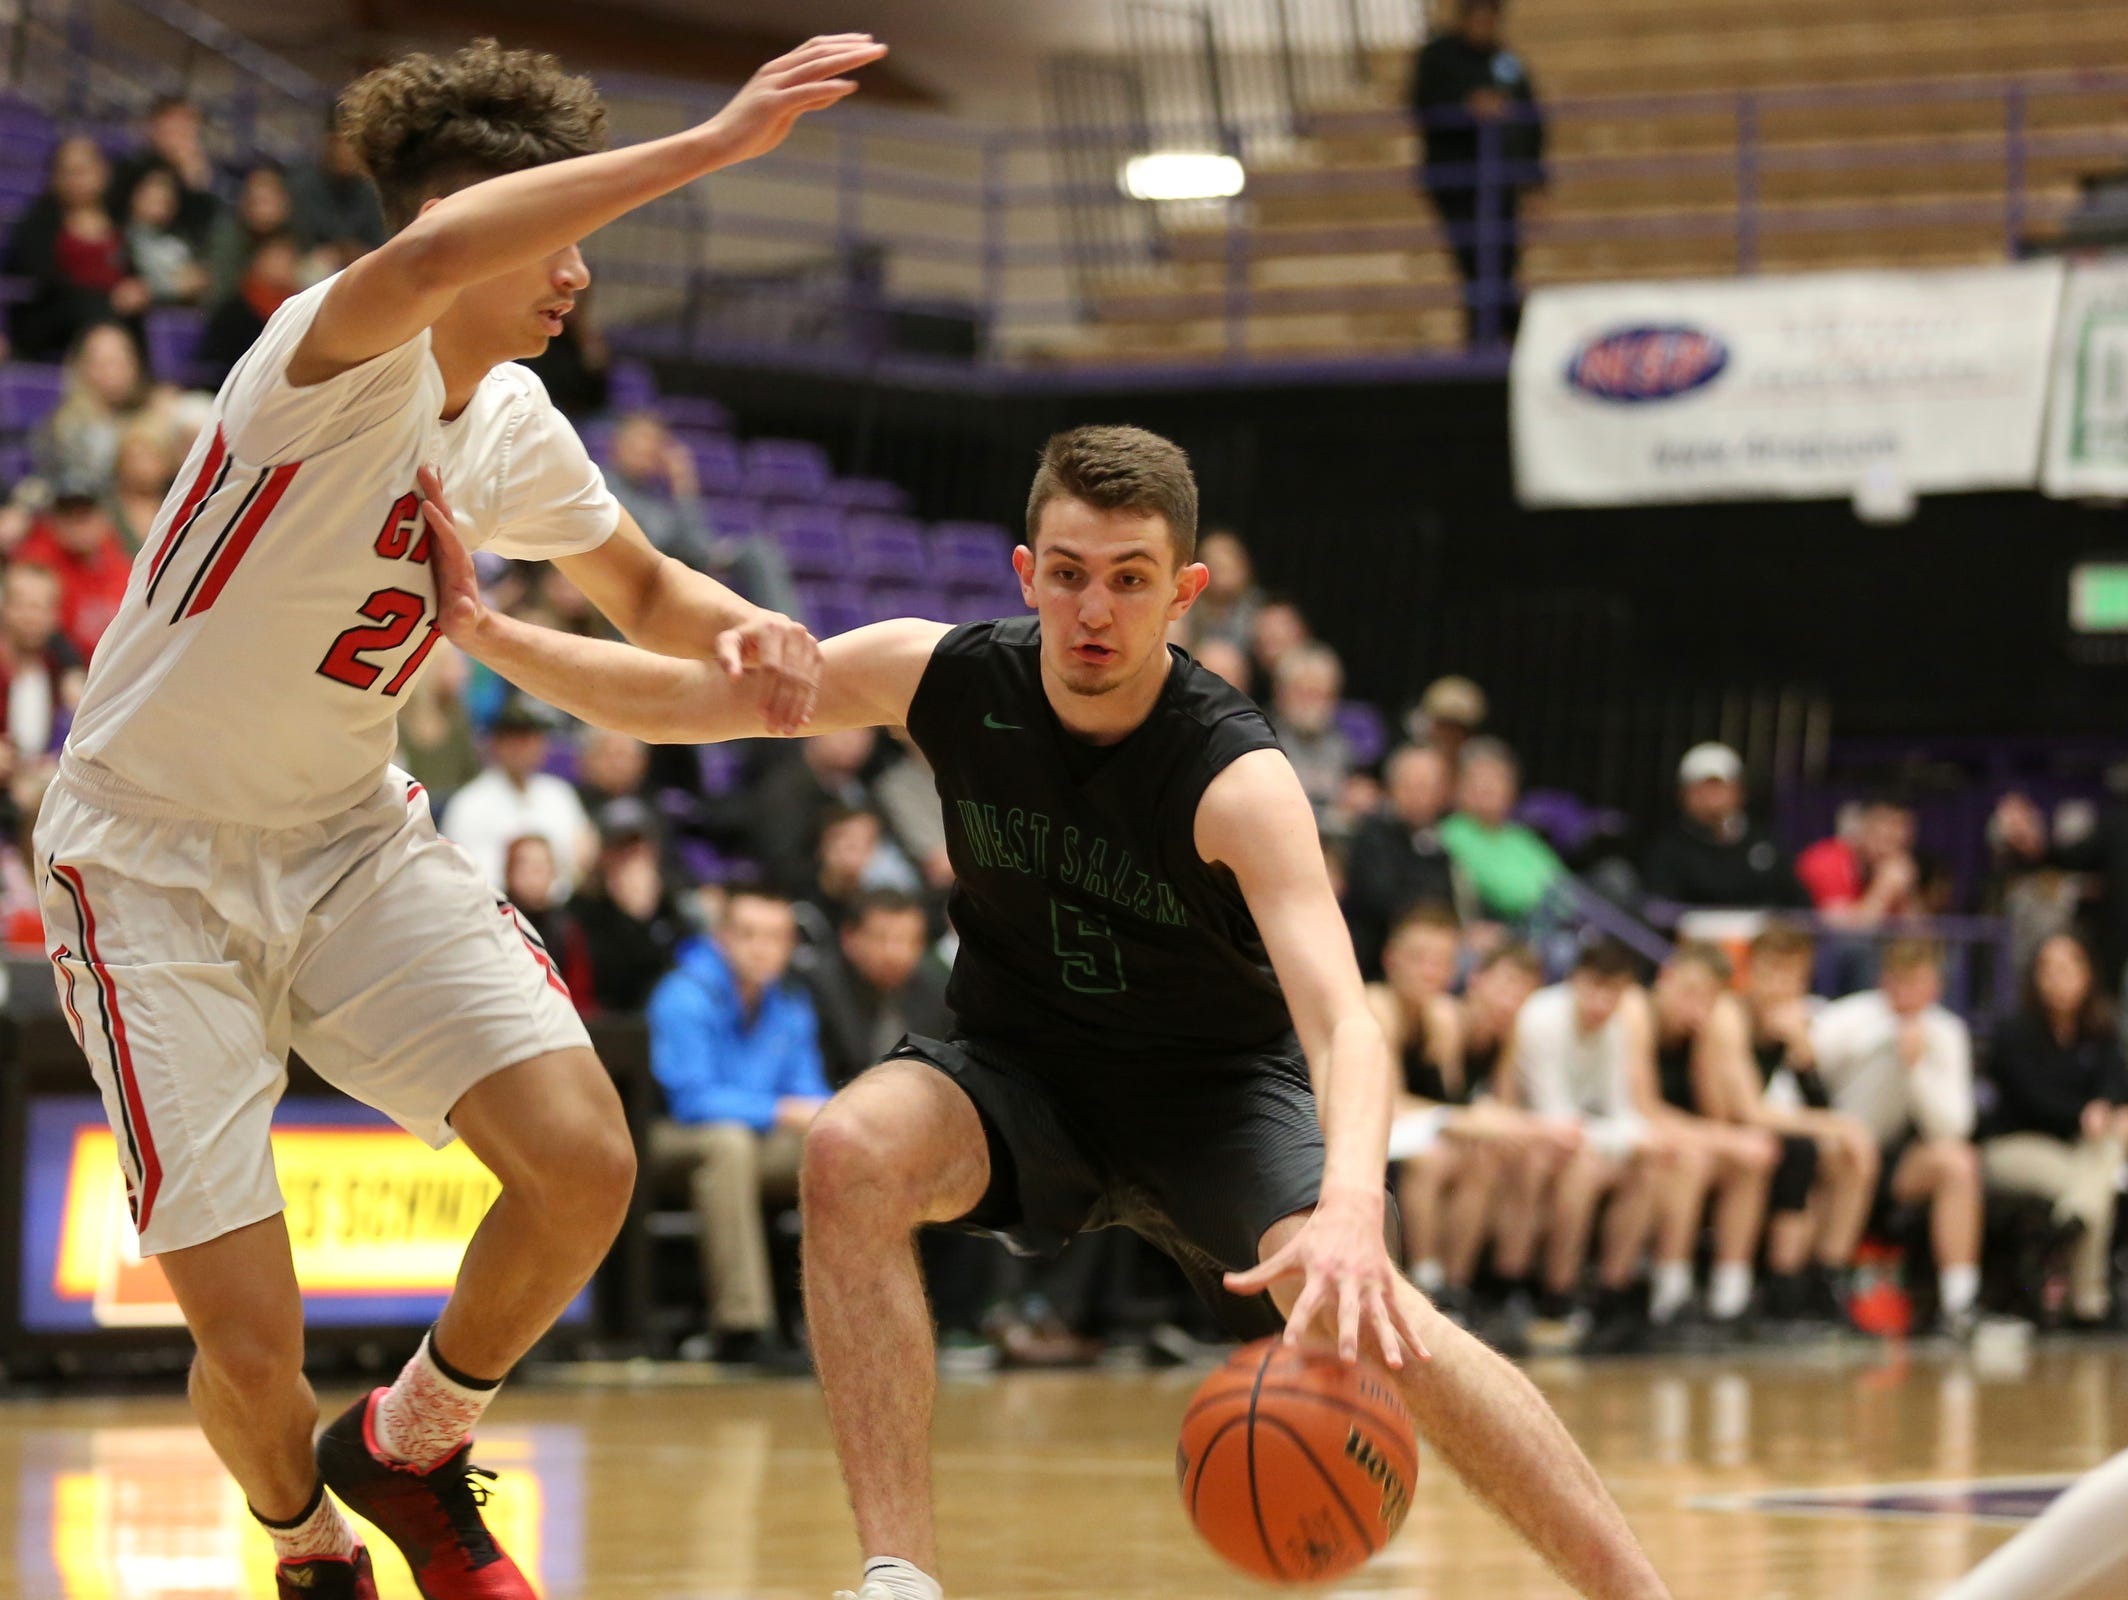 West Salem's Kyle Greeley (5) moves past Clackamas' Cole Turner (21) during the first half of the West Salem vs. Clackamas boy's basketball game in the quarterfinals of the OSAA Class 6A State Championships at the University of Portland on Wednesday, March 8, 2017. Clackamas won the game 68-52. West Salem will play a consolation game on Thursday.